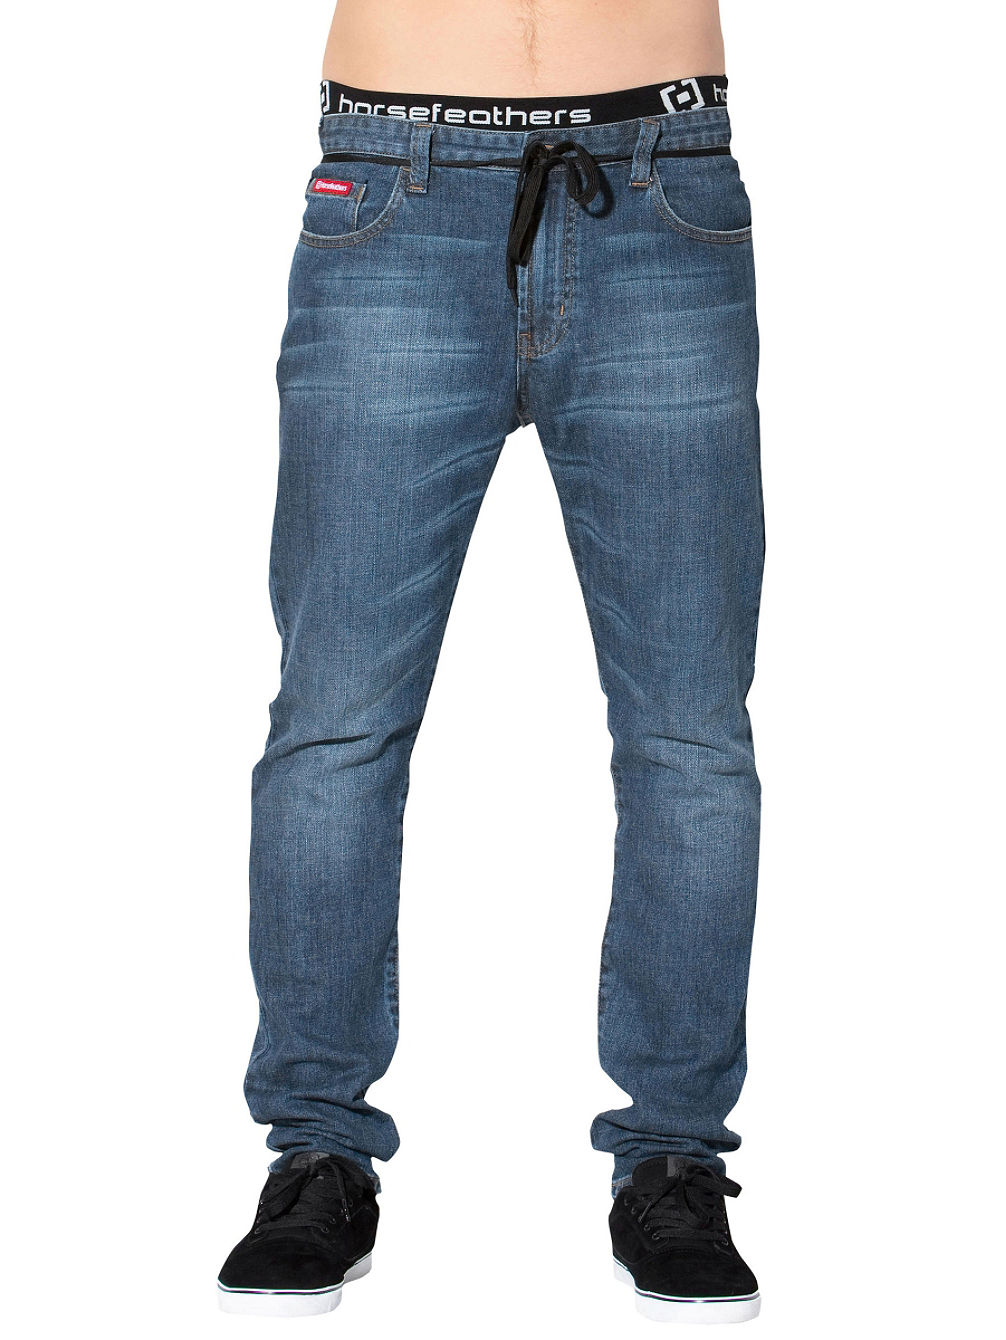 horsefeathers-cruise-denim-jeans